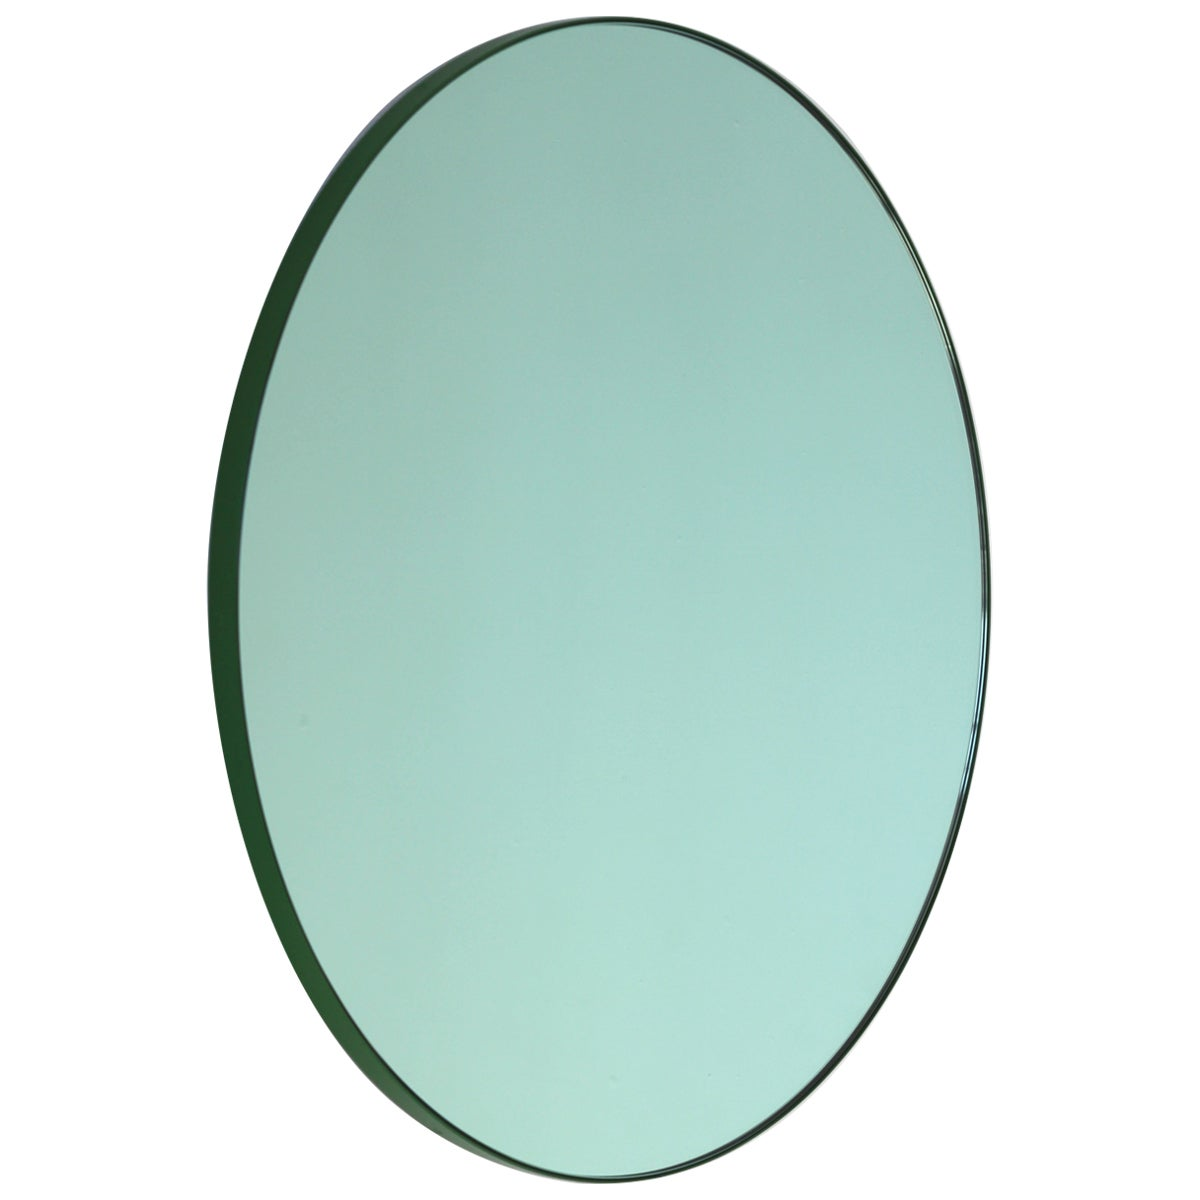 Orbis™ Green Tinted Modern Round Mirror with Green Frame - Large